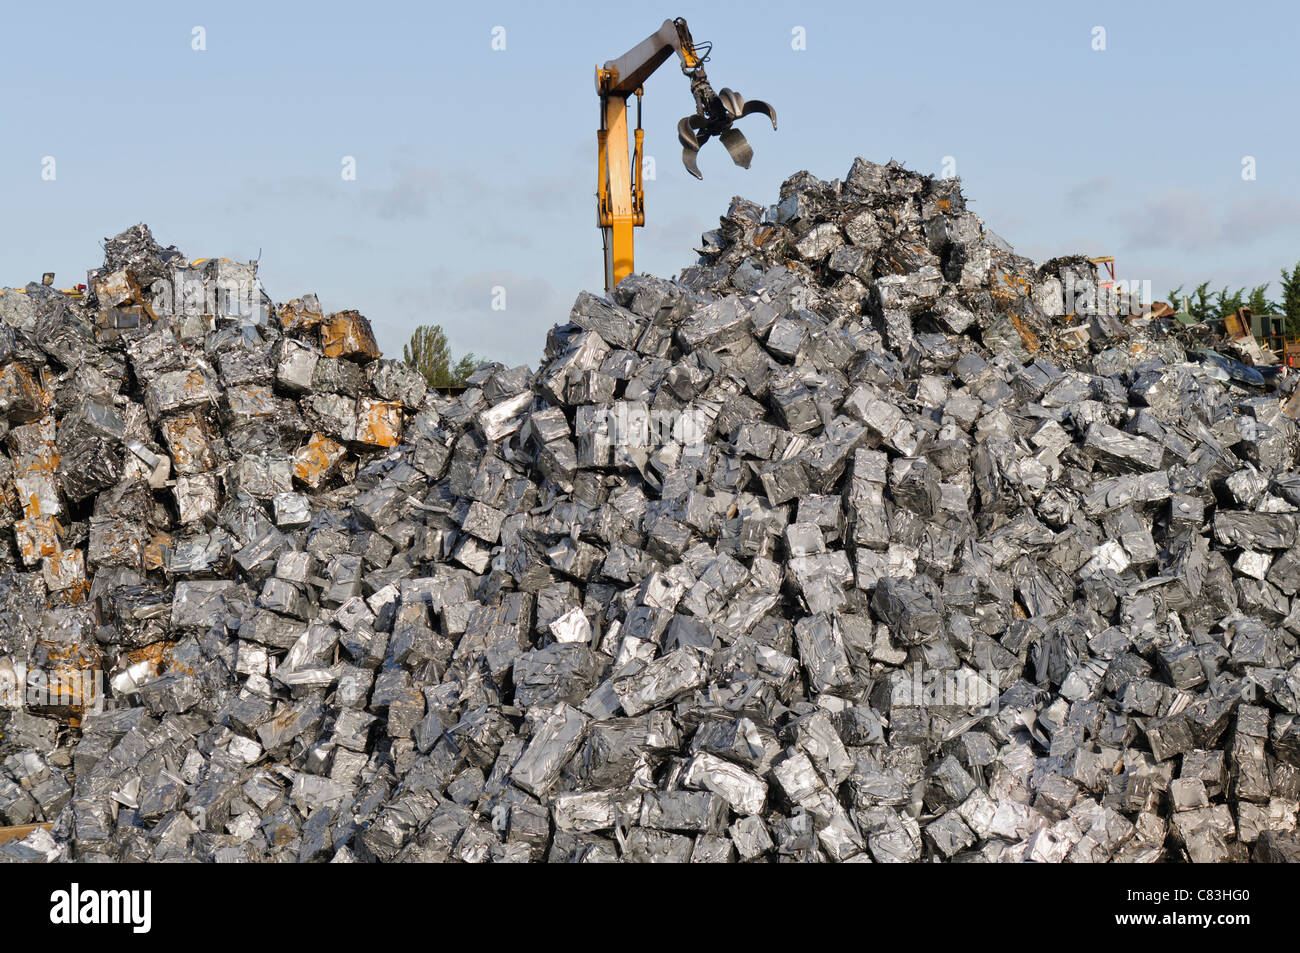 Scrap metal cubes in a scrap yard Stock Photo: 39417616 - Alamy